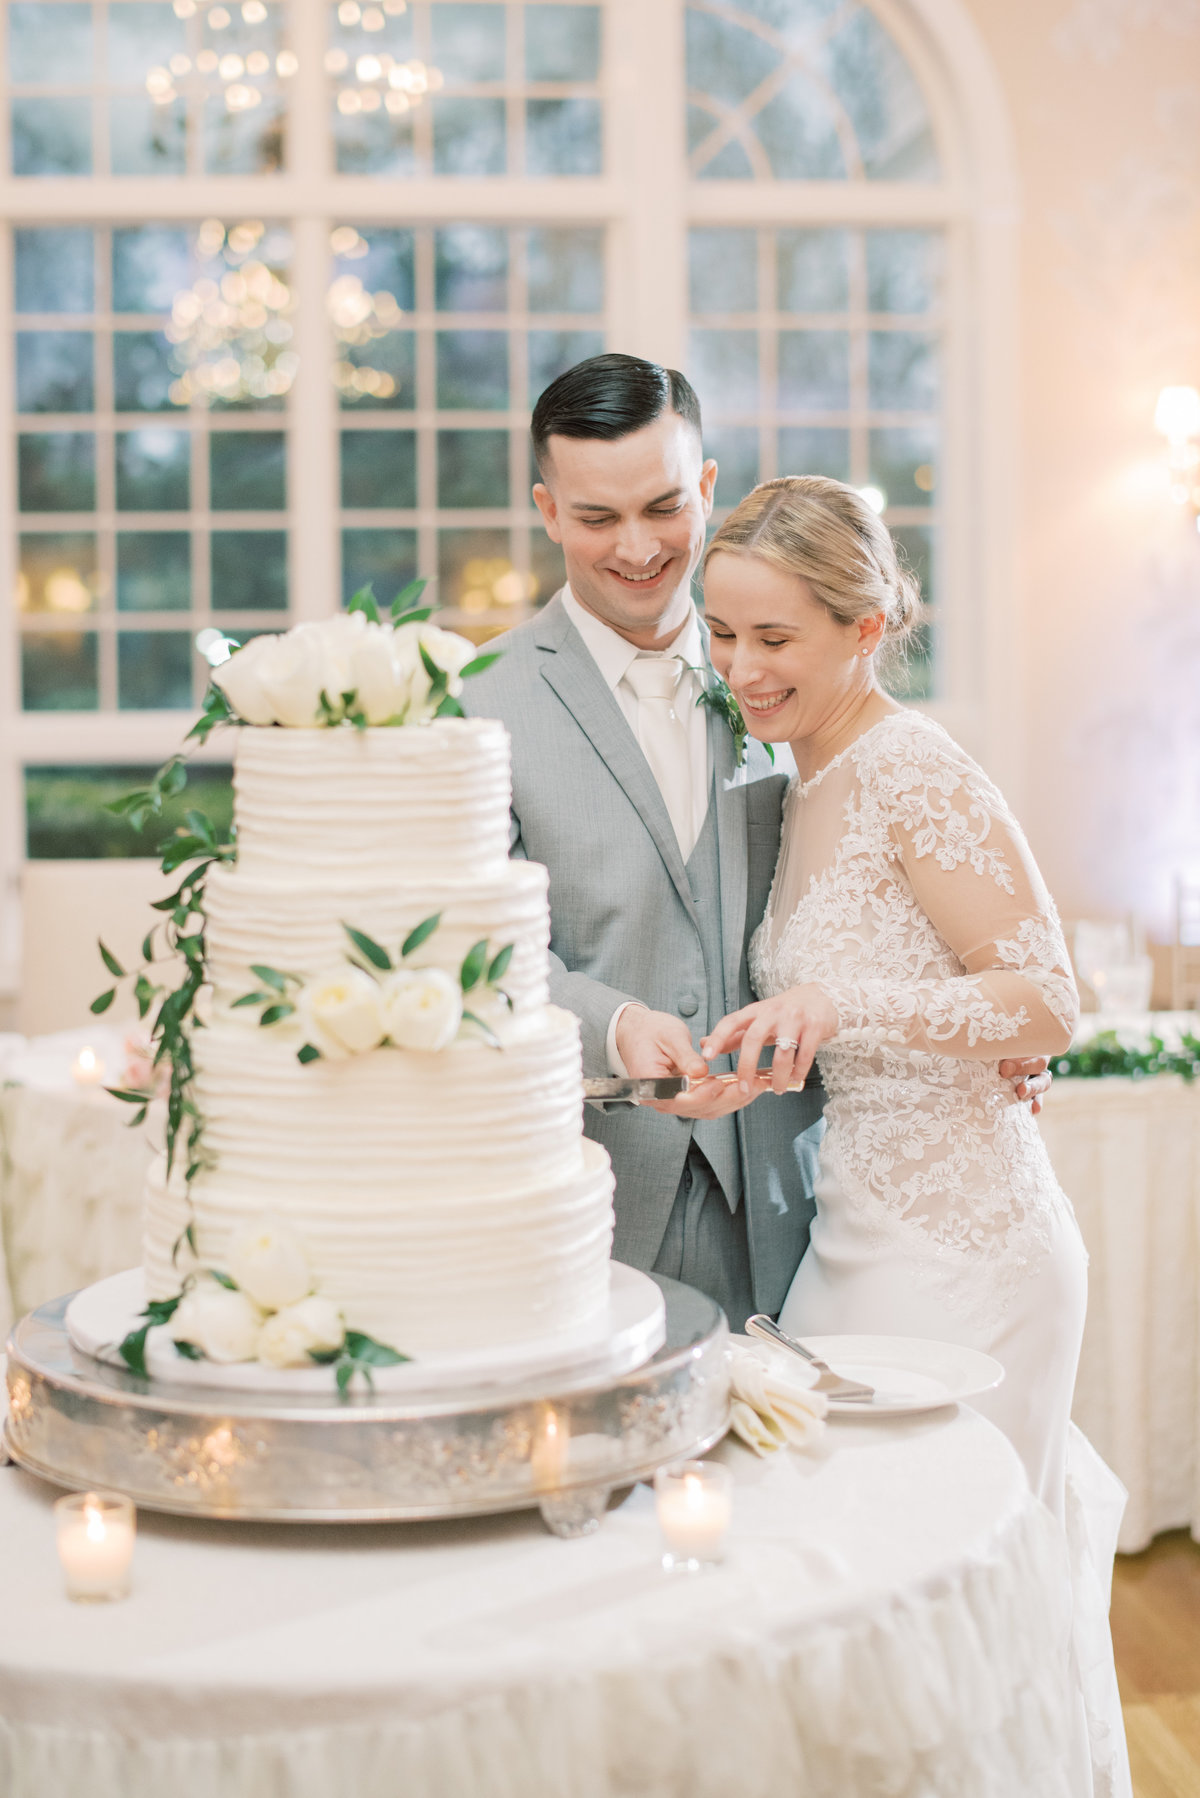 bright-candid-cake-cutting-wedding-photography